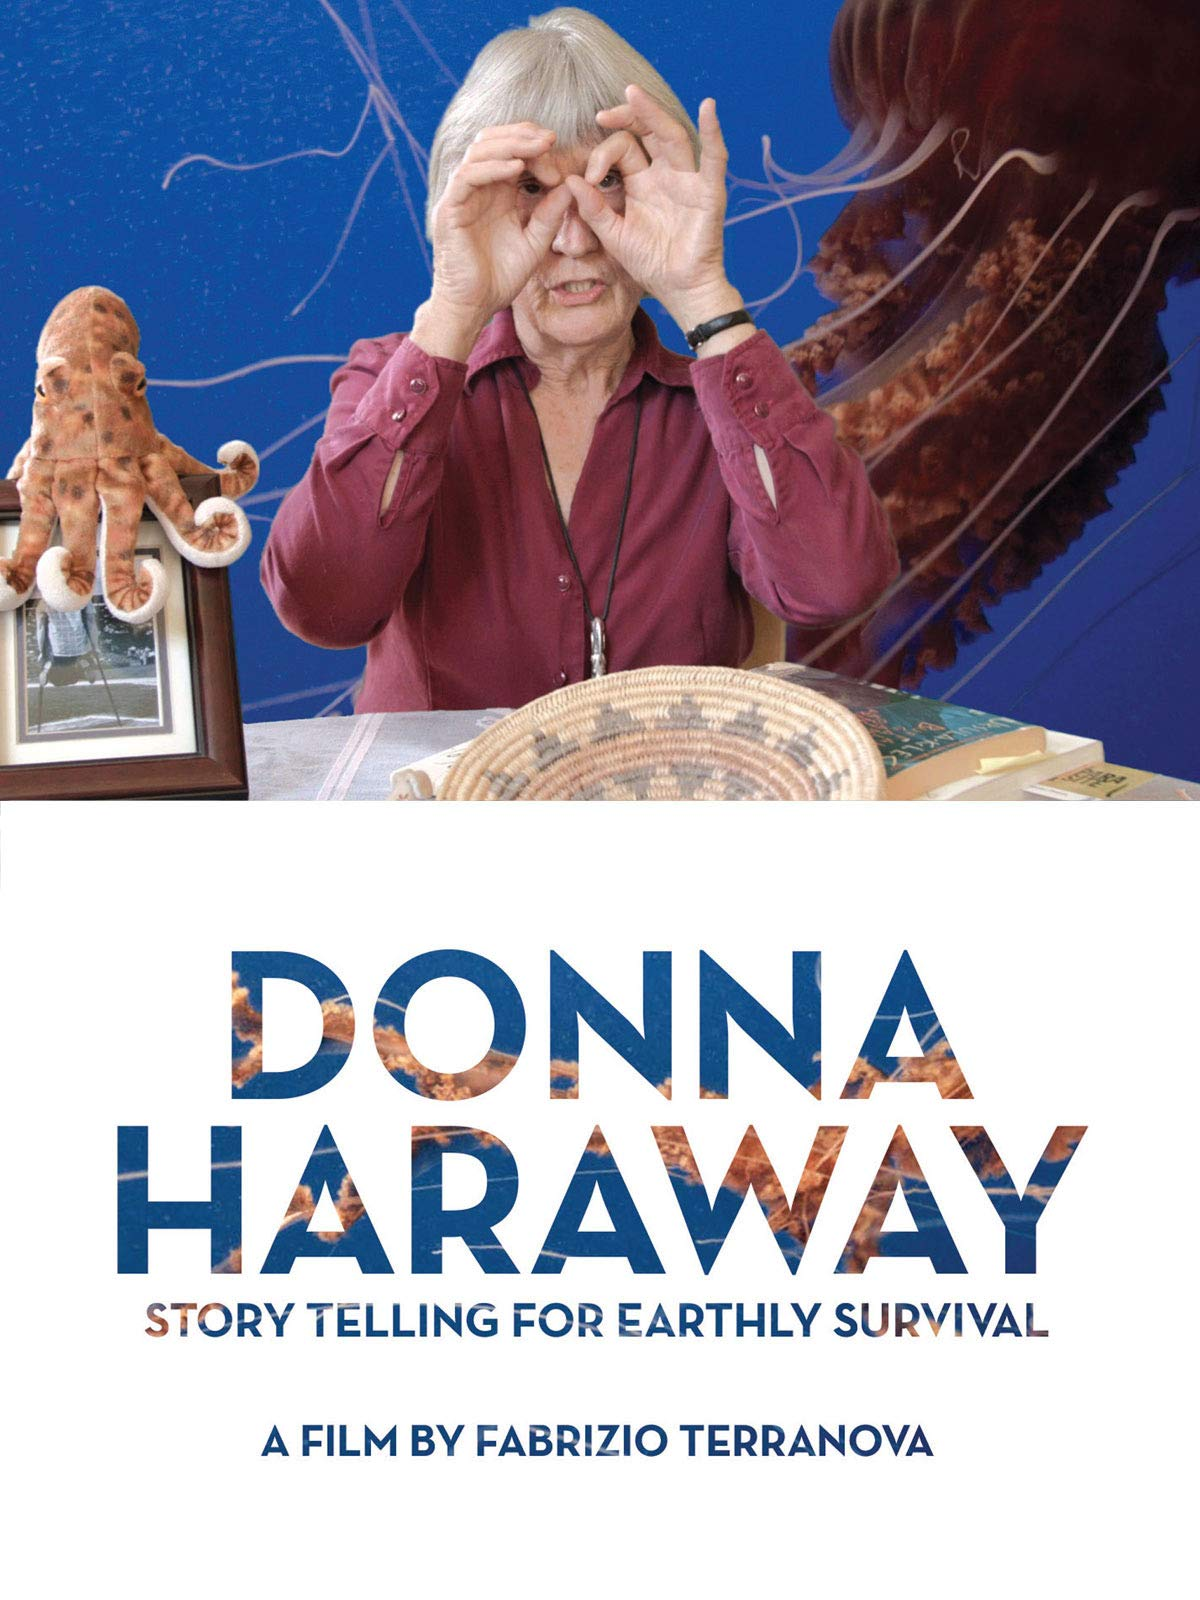 story telling for earthly survival